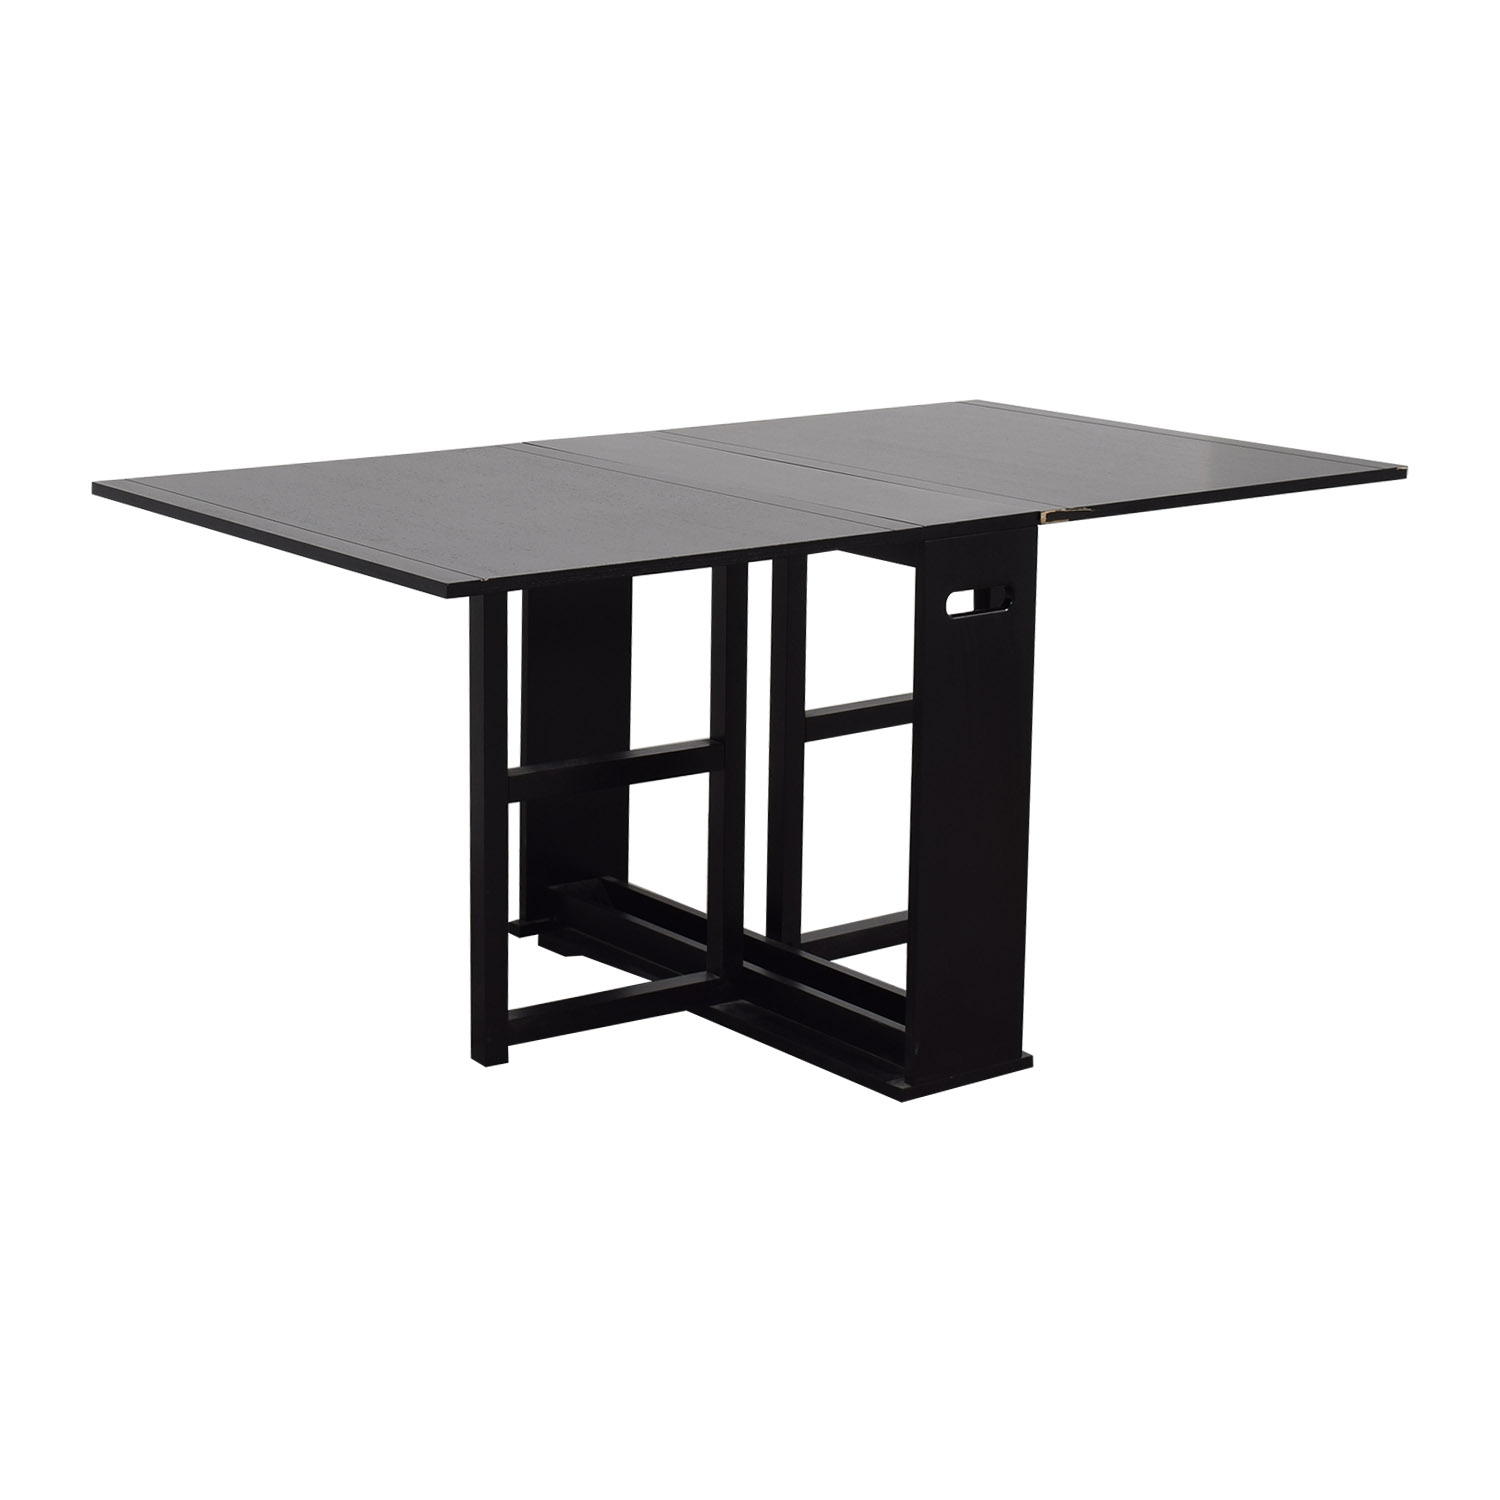 75 Off Crate Barrel Crate Barrel Span Black Gateleg Dining